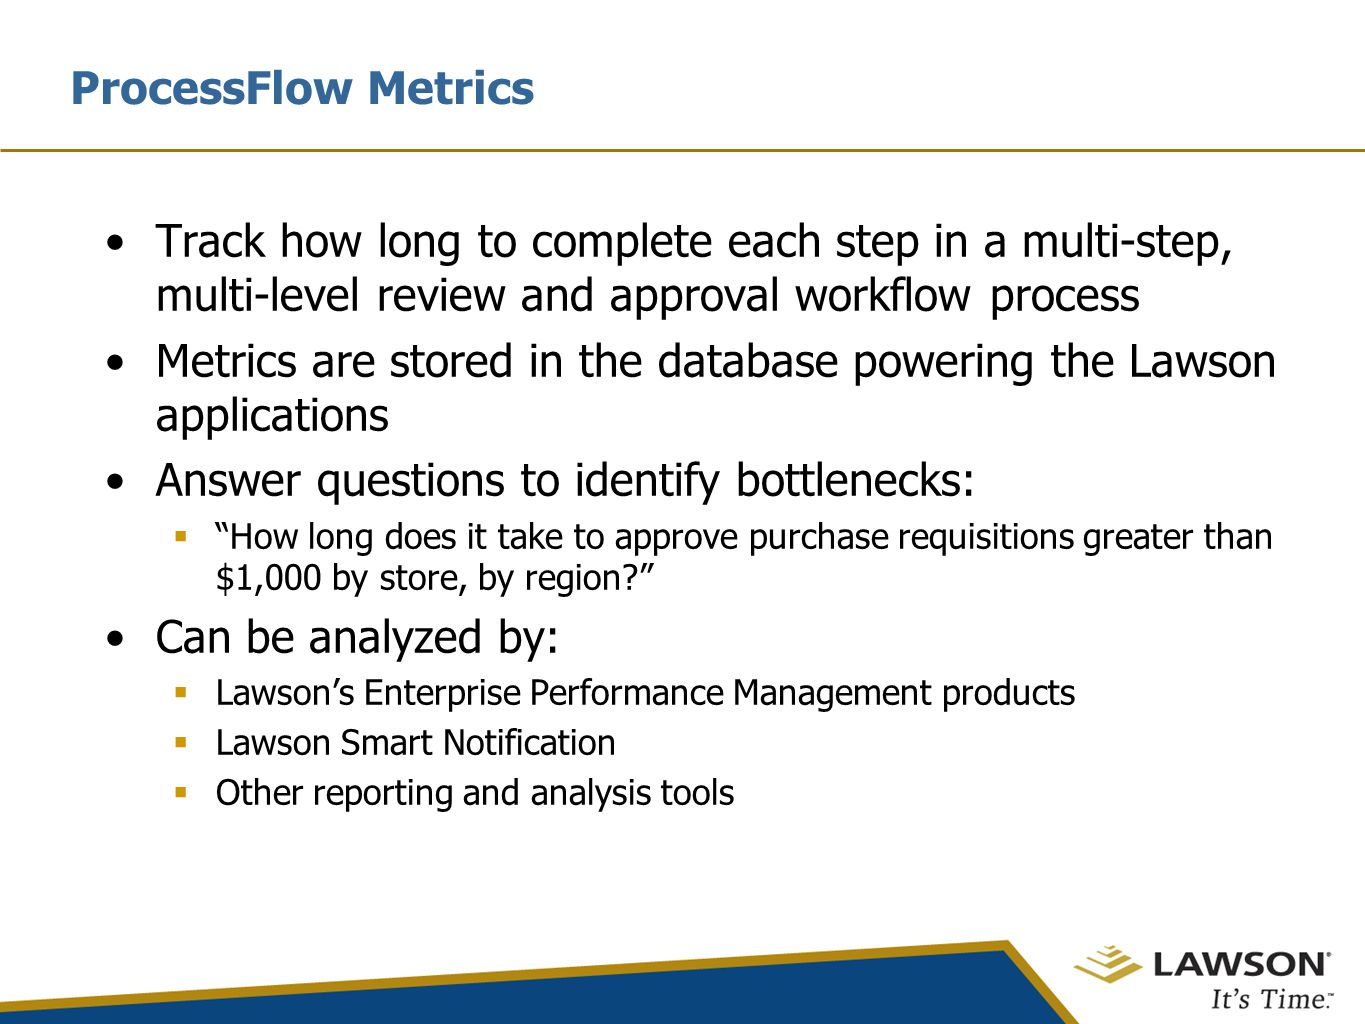 ProcessFlow Metrics Track how long to complete each step in a multi-step, multi-level review and approval workflow process Metrics are stored in the database powering the Lawson applications Answer questions to identify bottlenecks:  How long does it take to approve purchase requisitions greater than $1,000 by store, by region? Can be analyzed by:  Lawson's Enterprise Performance Management products  Lawson Smart Notification  Other reporting and analysis tools